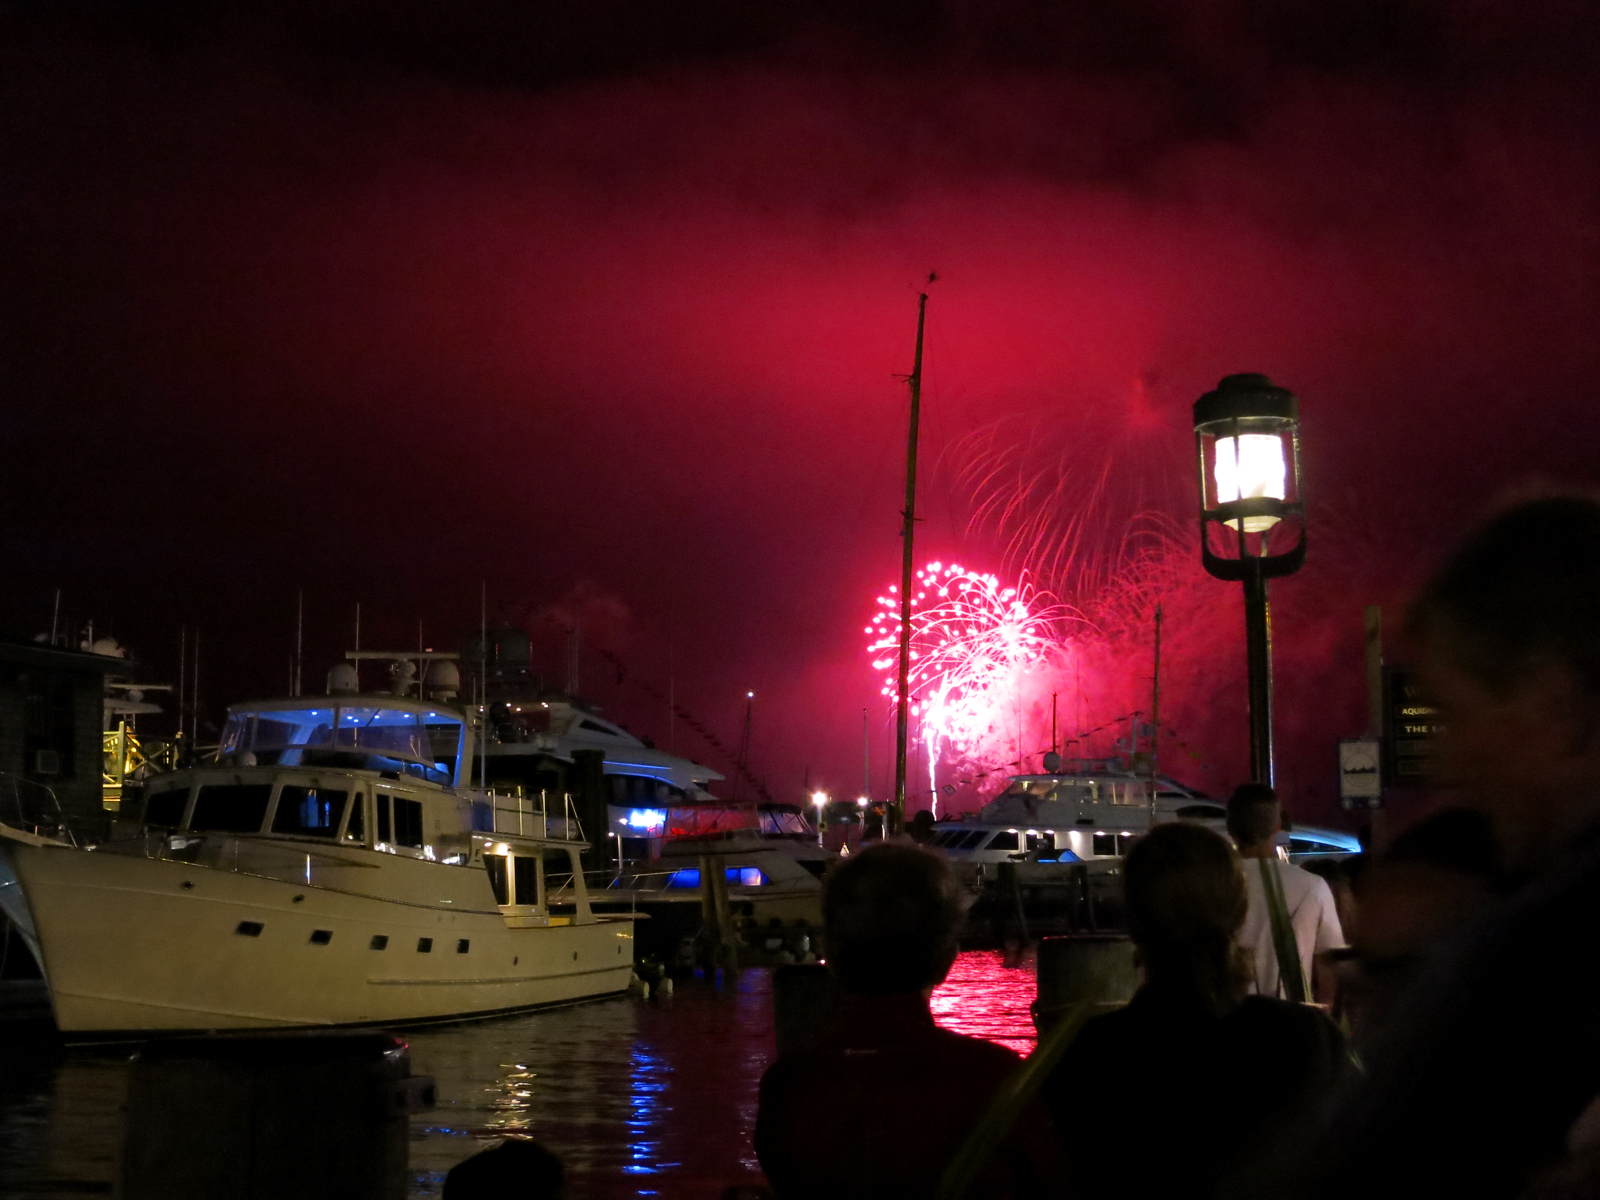 ROCKET'S RED GLARE OVER NEWPORT HARBOR - live. travel. adventure. bless. | Glowing red firework lighting up the sky in Newport, RI during the 4th of July fireworks. Happy 4th of July!